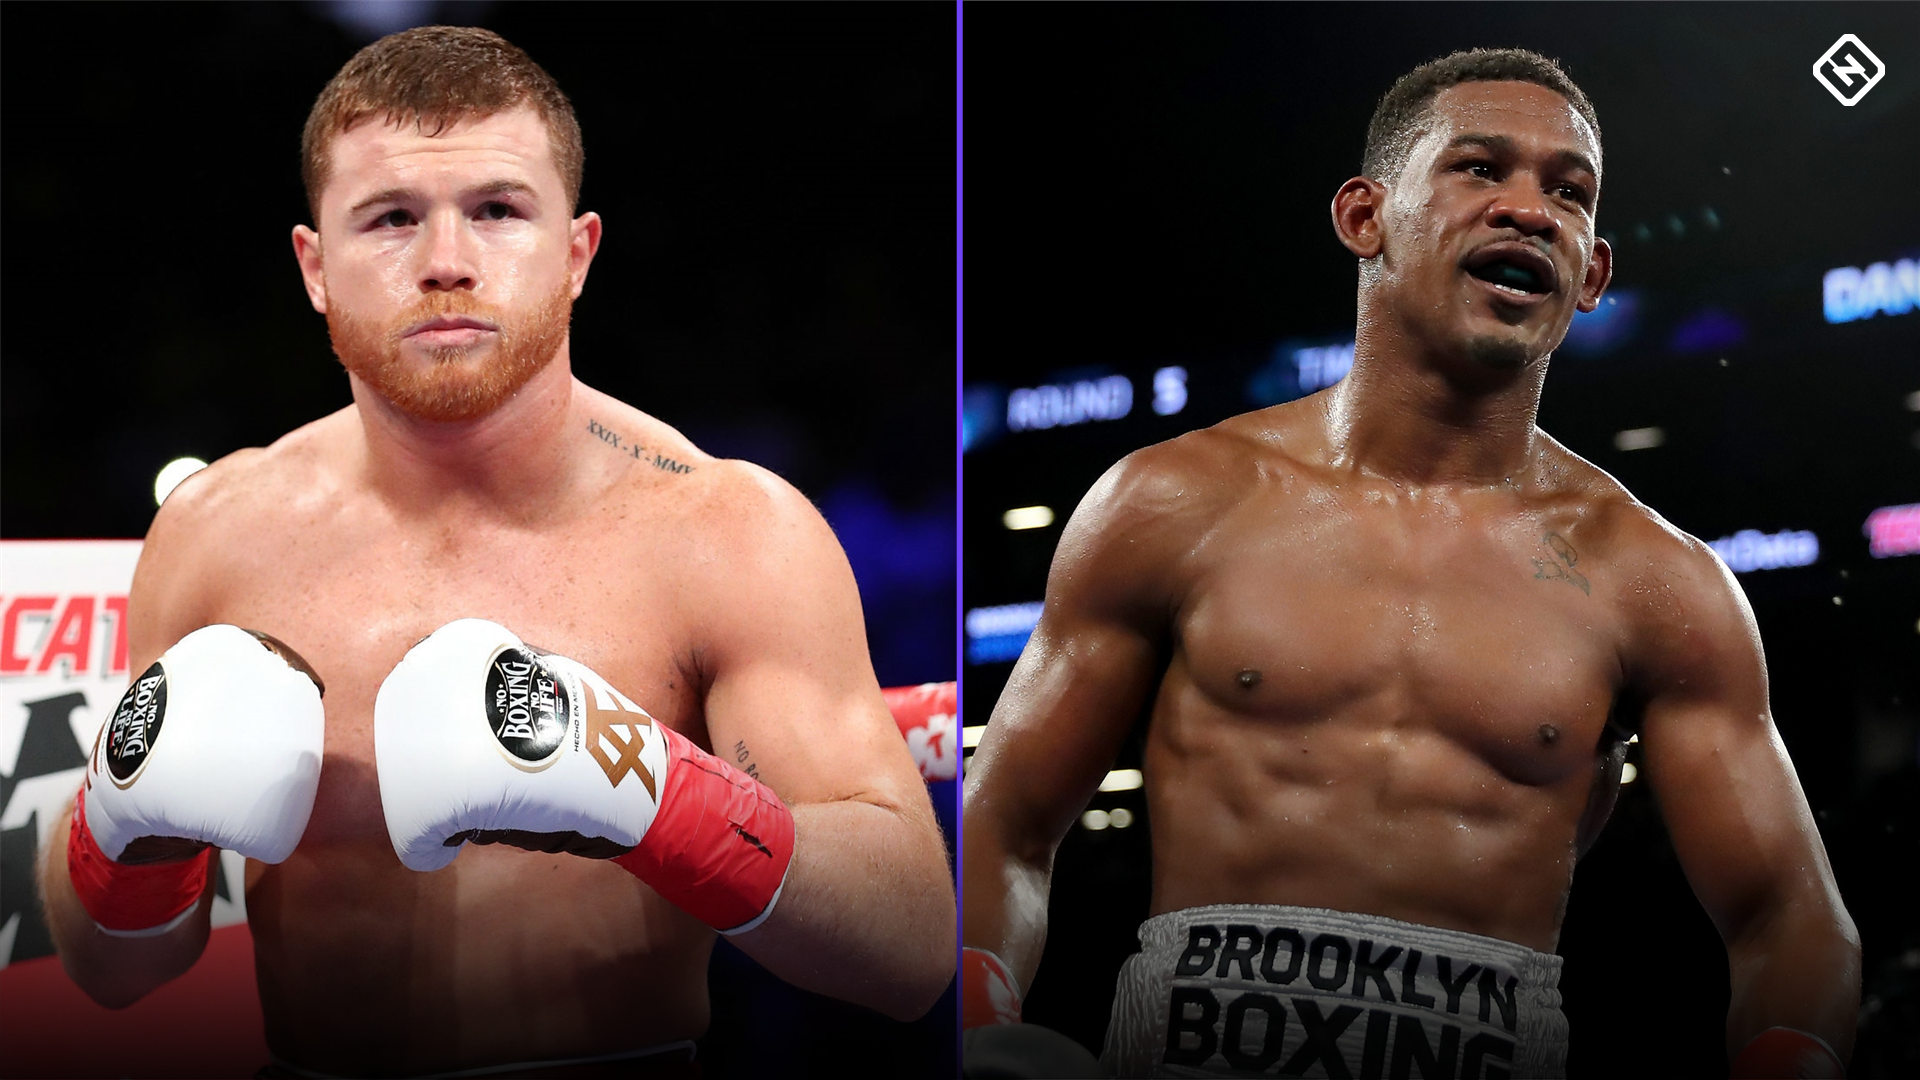 canelo jacobs 021819 getty ftrpng cnwalbhmid0zzblvdpli2sji 2 - Eddie Hearn: The winner of Canelo-Jacobs will be pound-for-pound best